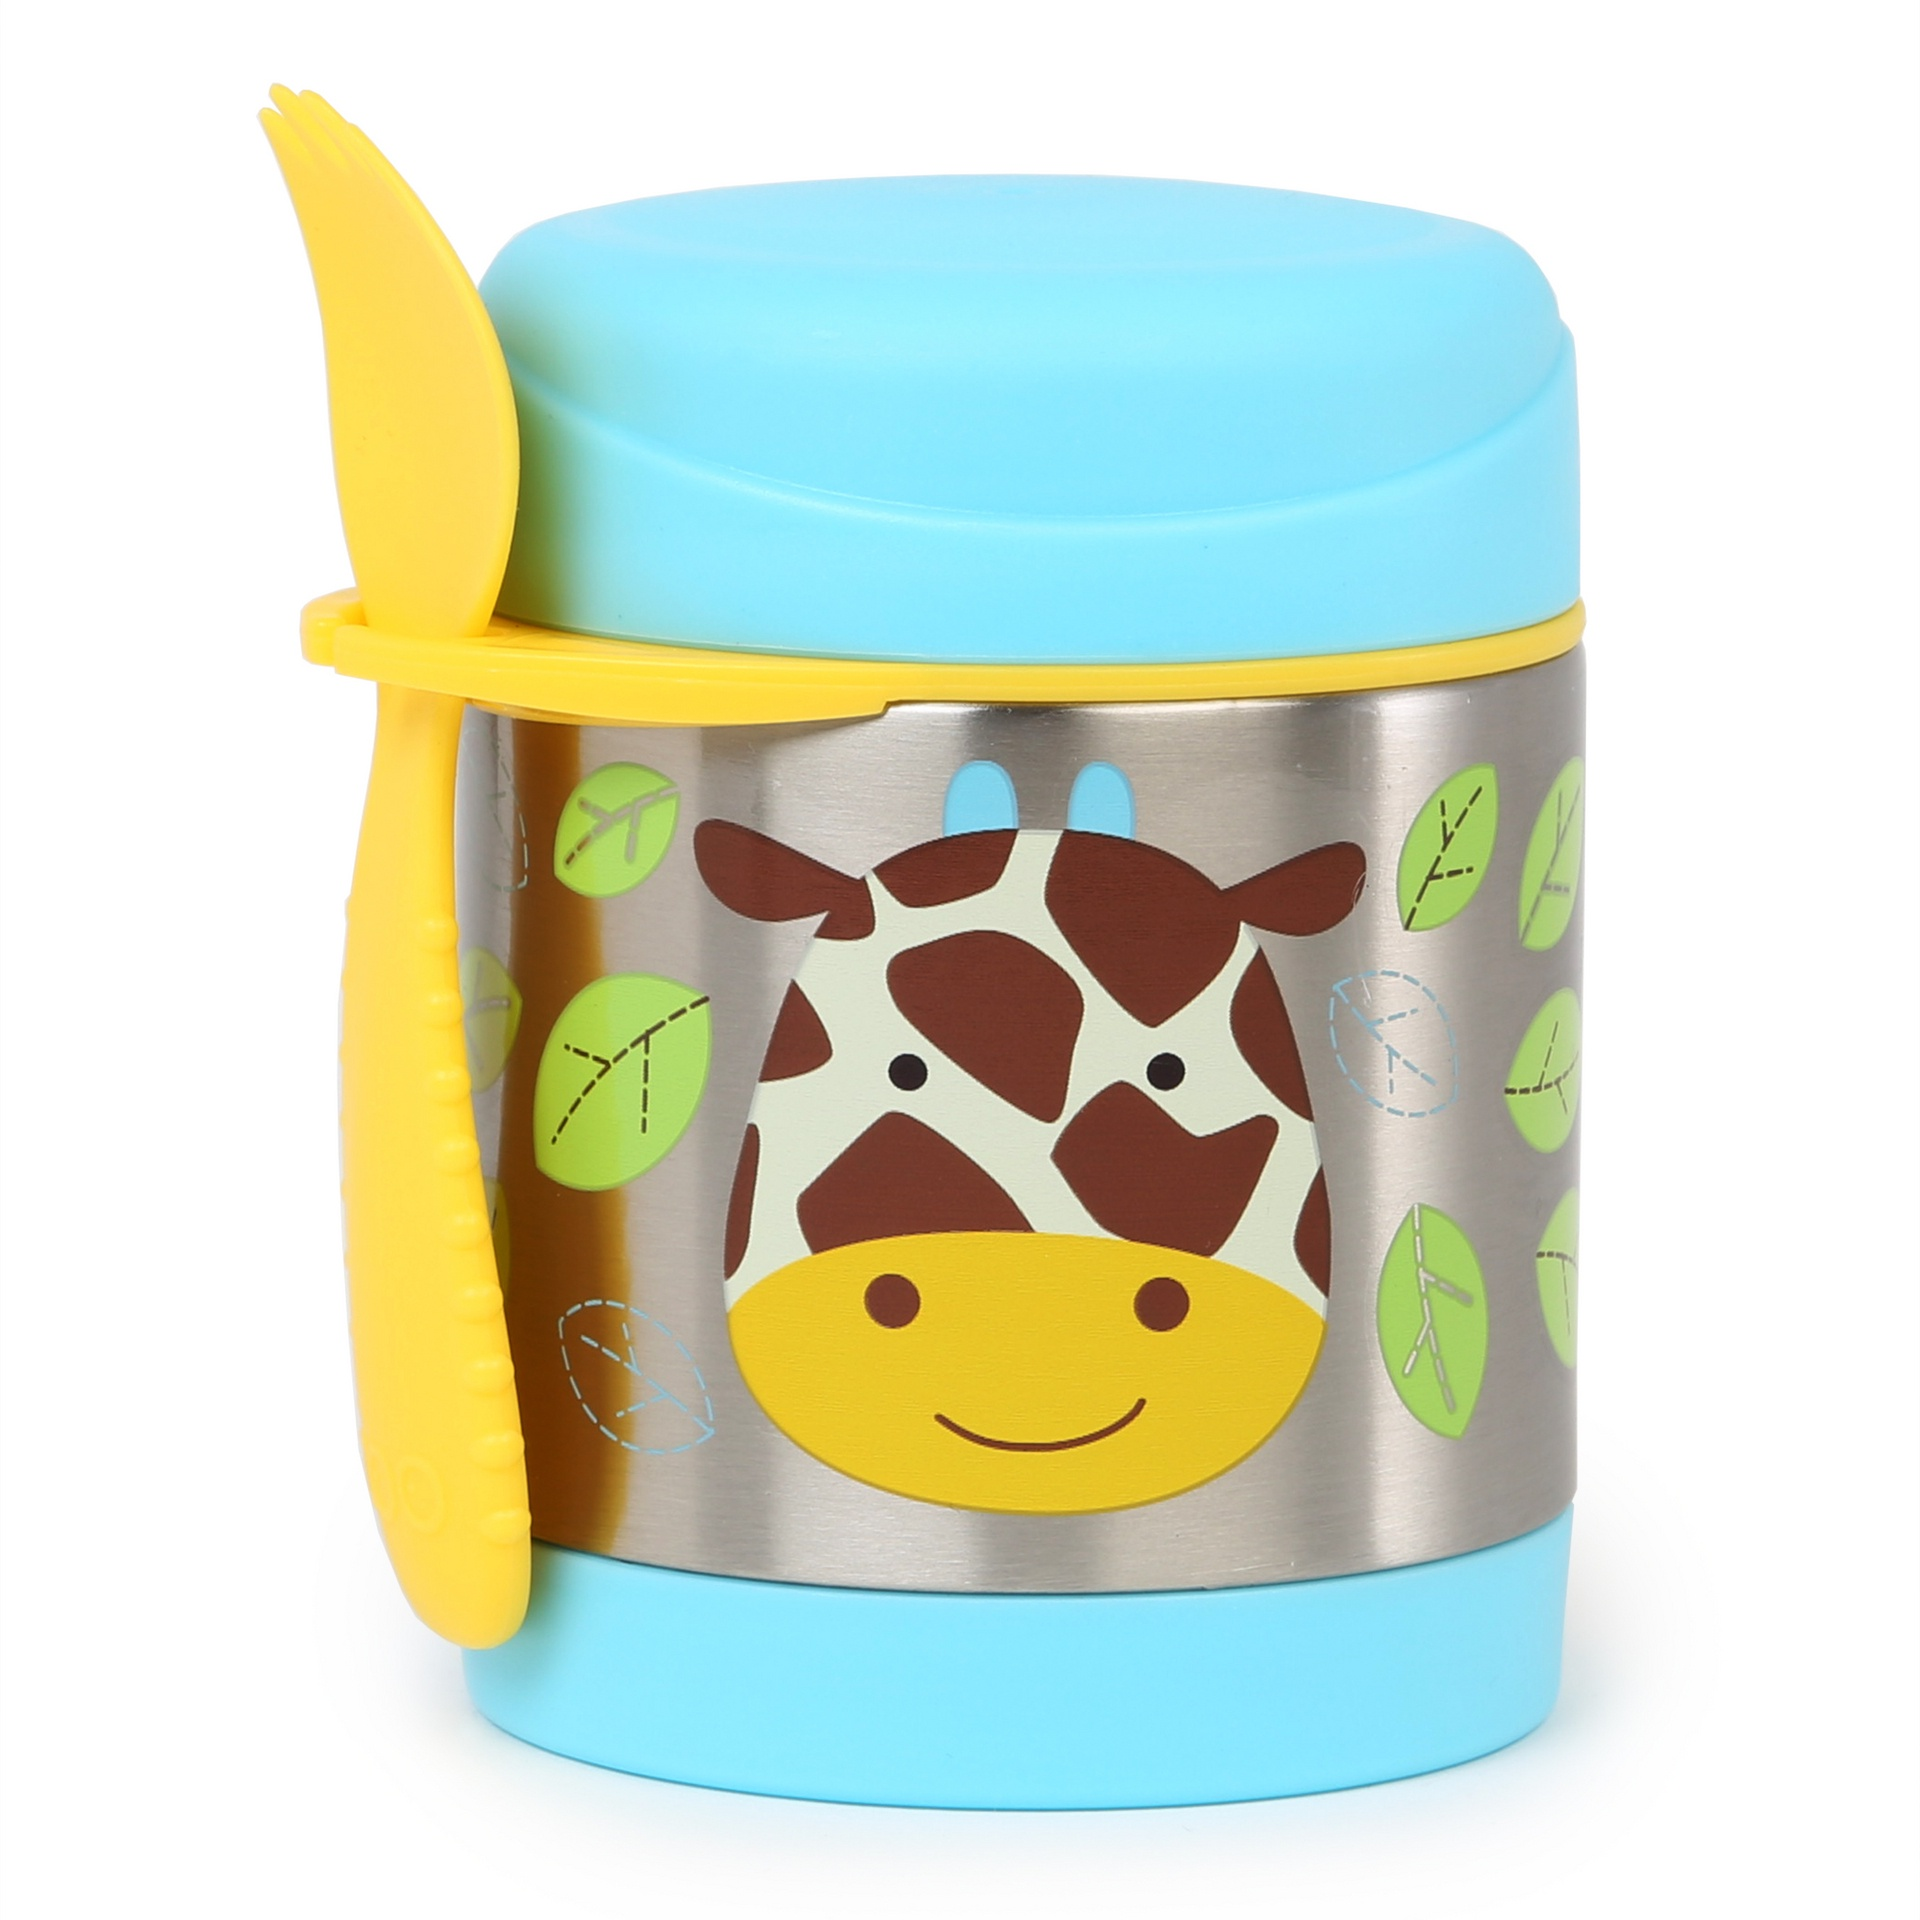 Skip Hop Zoo Insulated Container, Giraffe, One size